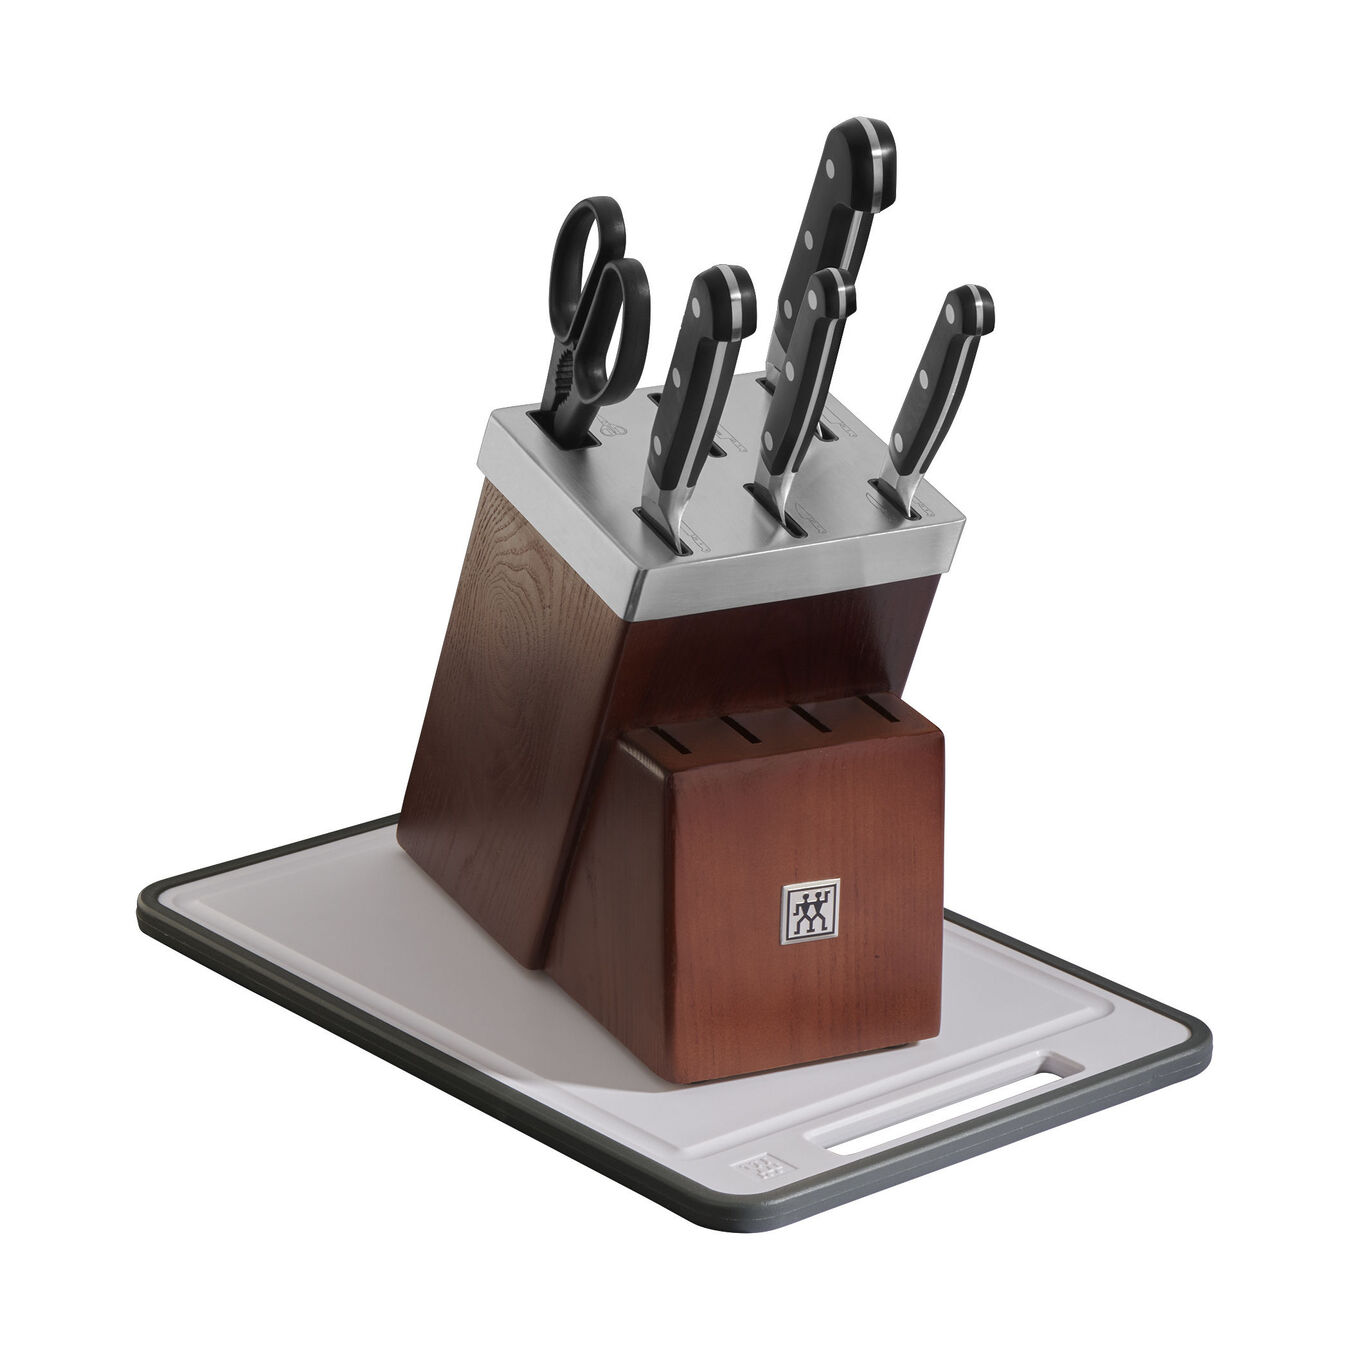 7-pc Self-Sharpening Knife Block Set,,large 1